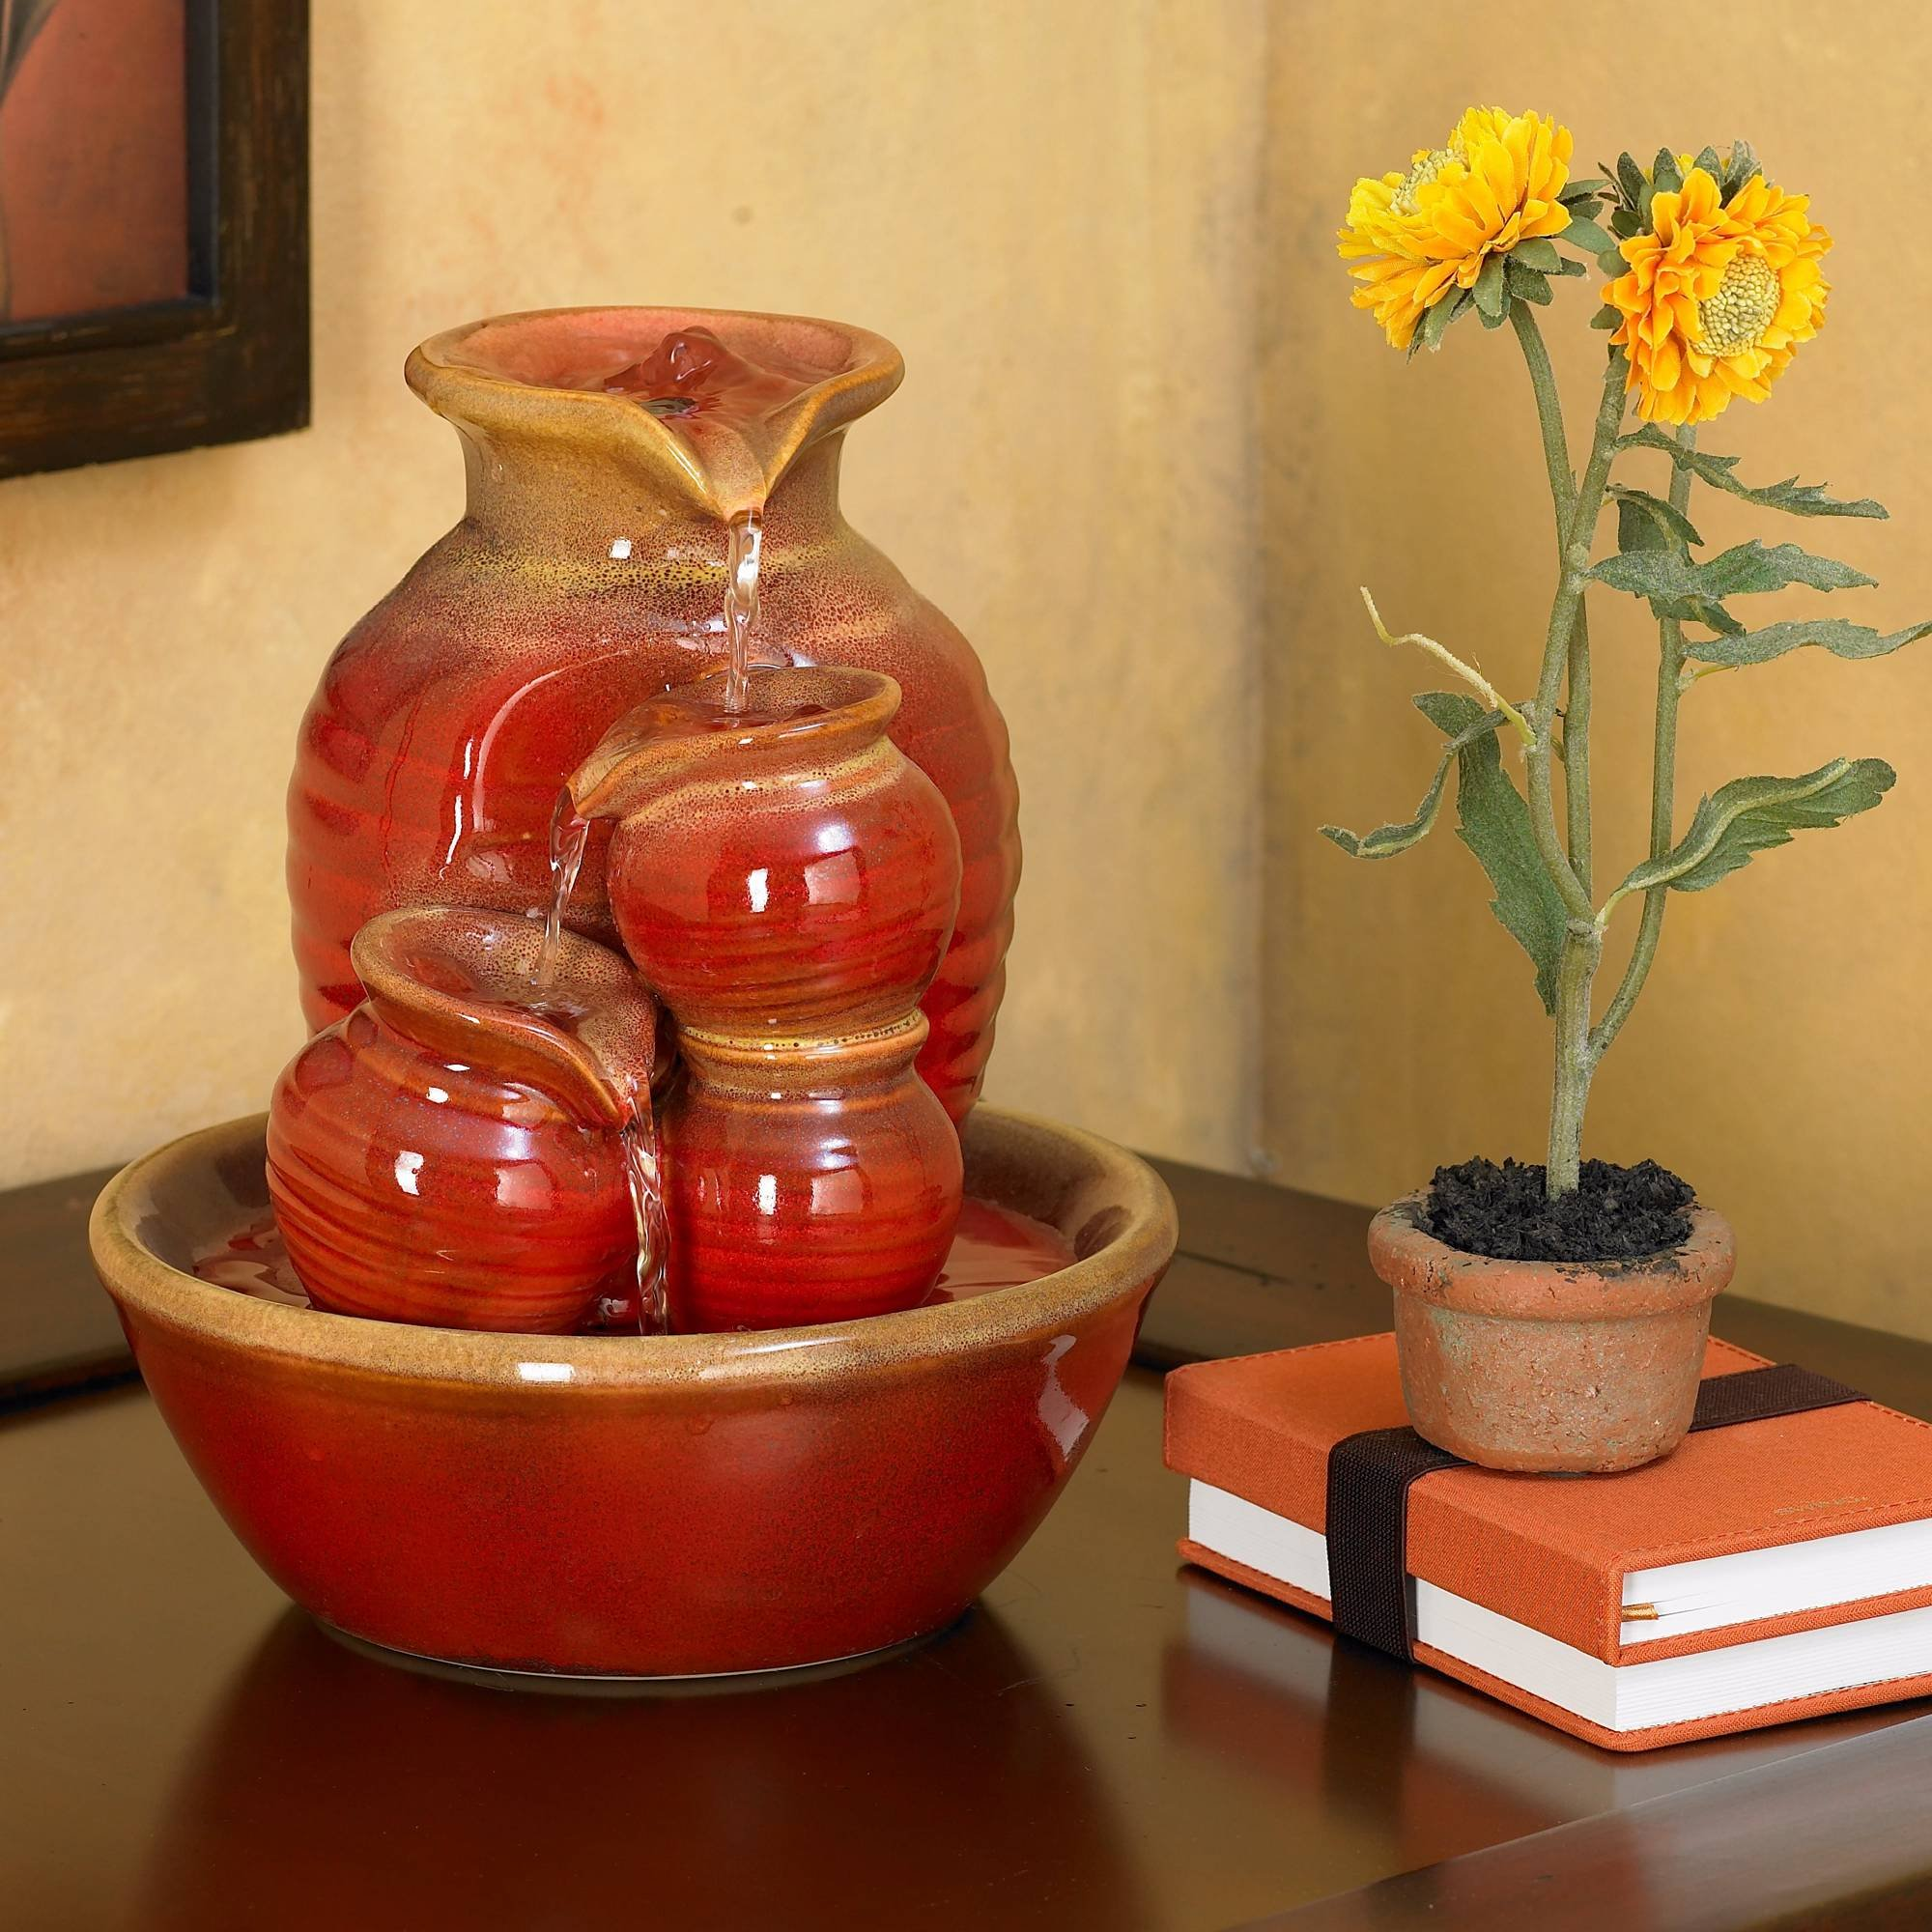 John Timberland Country Jar 9'' High Ceramic Red Table Fountain by John Timberland